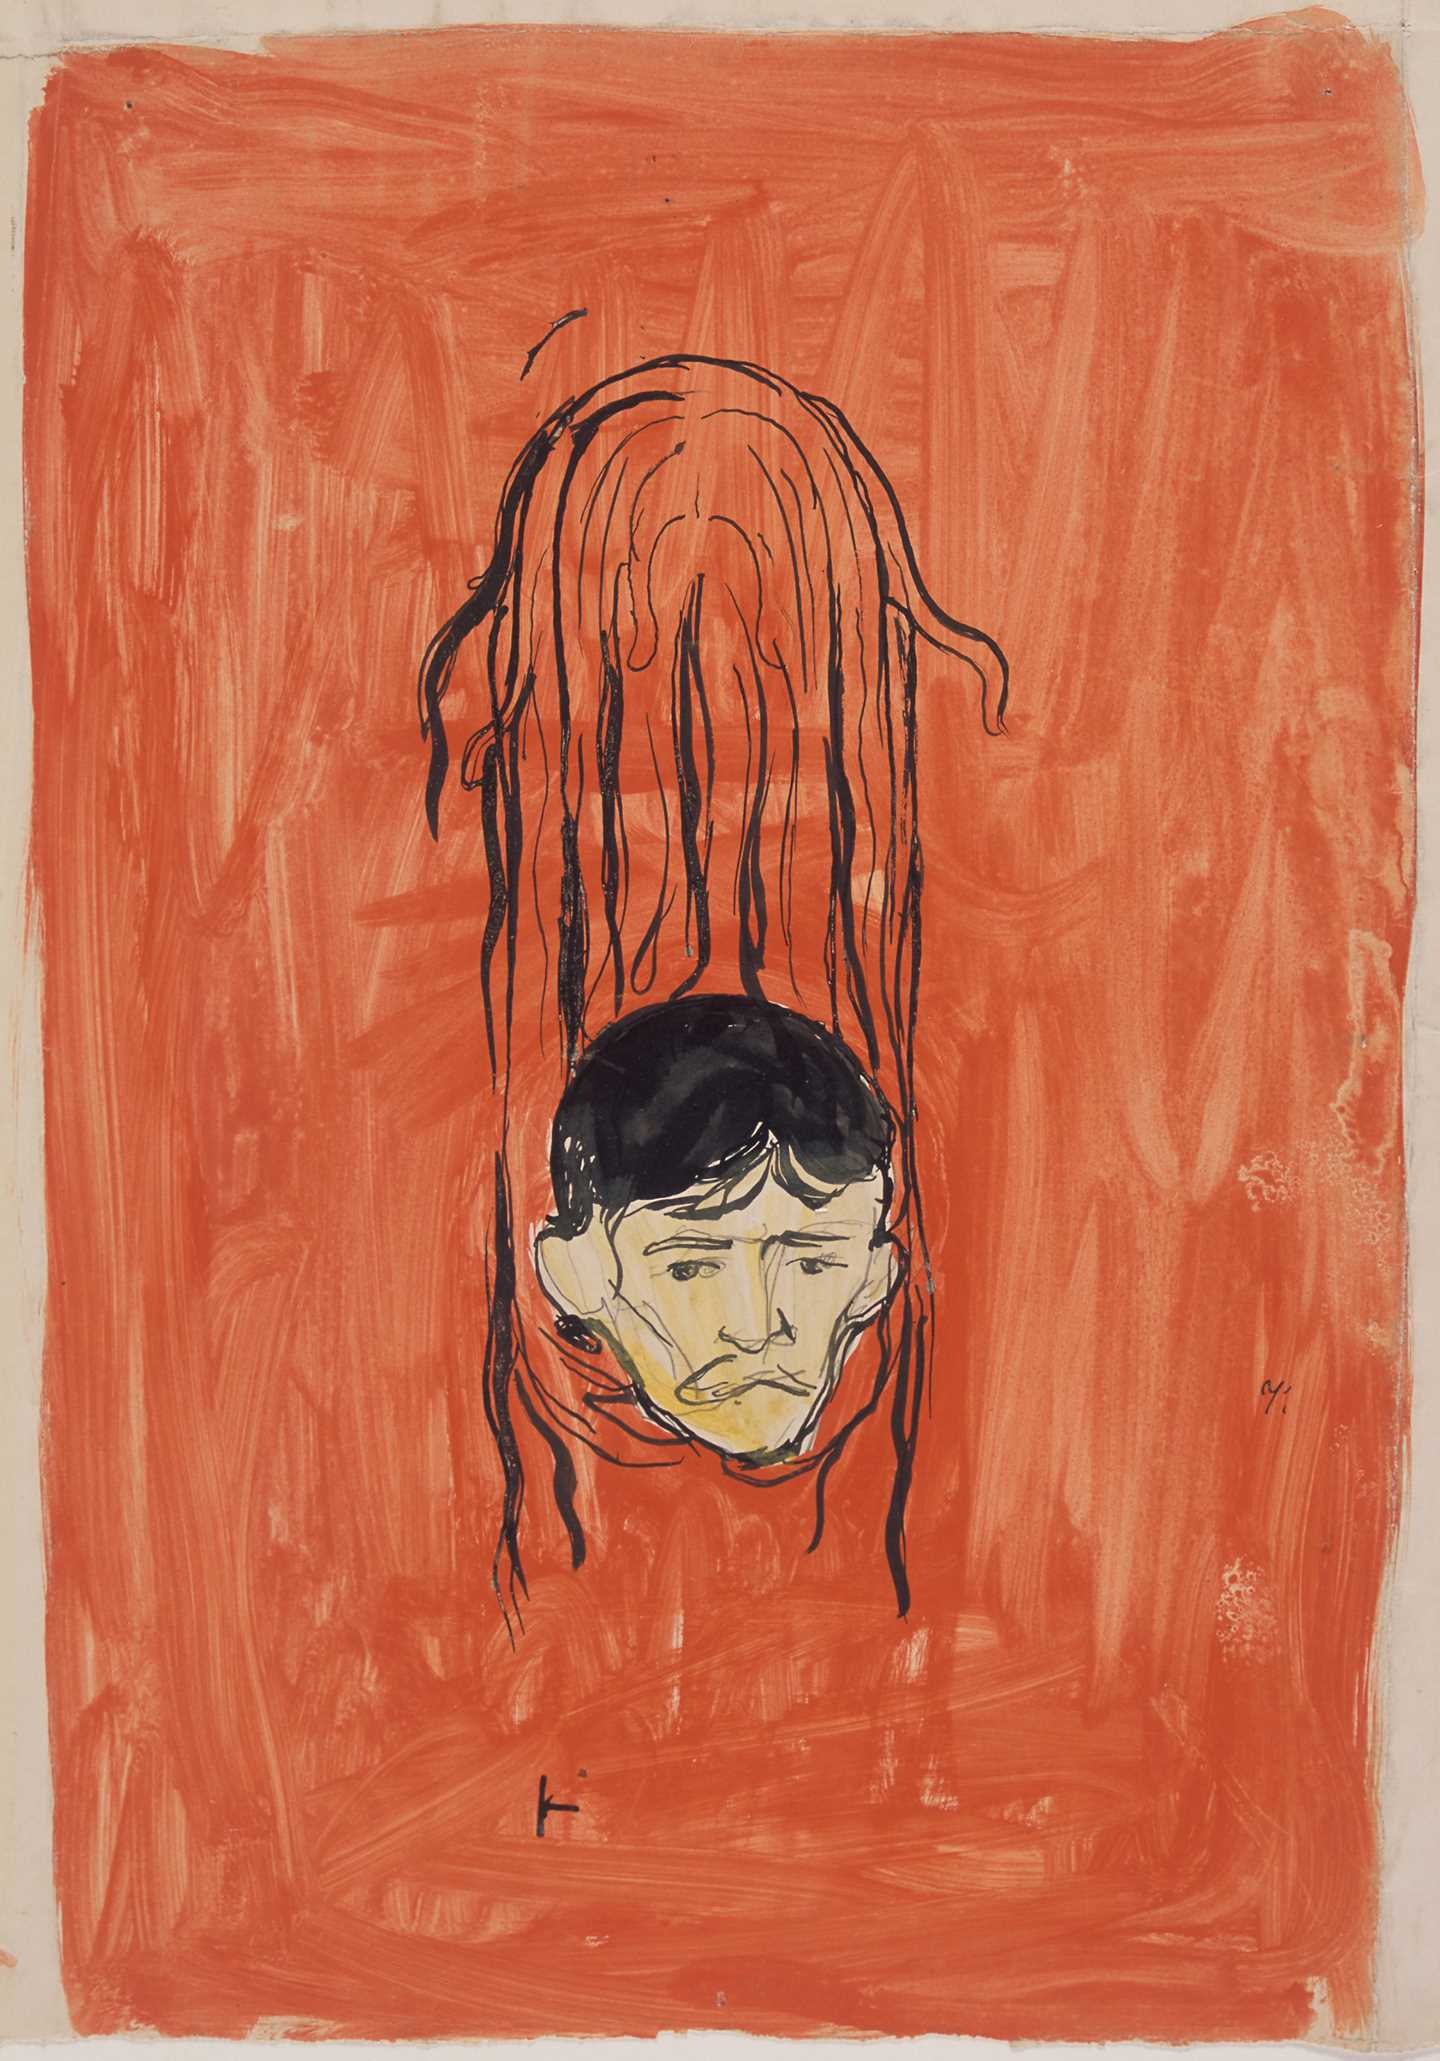 Edvard Munch, Self-Portrait in Woman's Hair: Salome Paraphrase. Gouache, brush, pencil, 1894-1898. Photo: Munchmuseet.